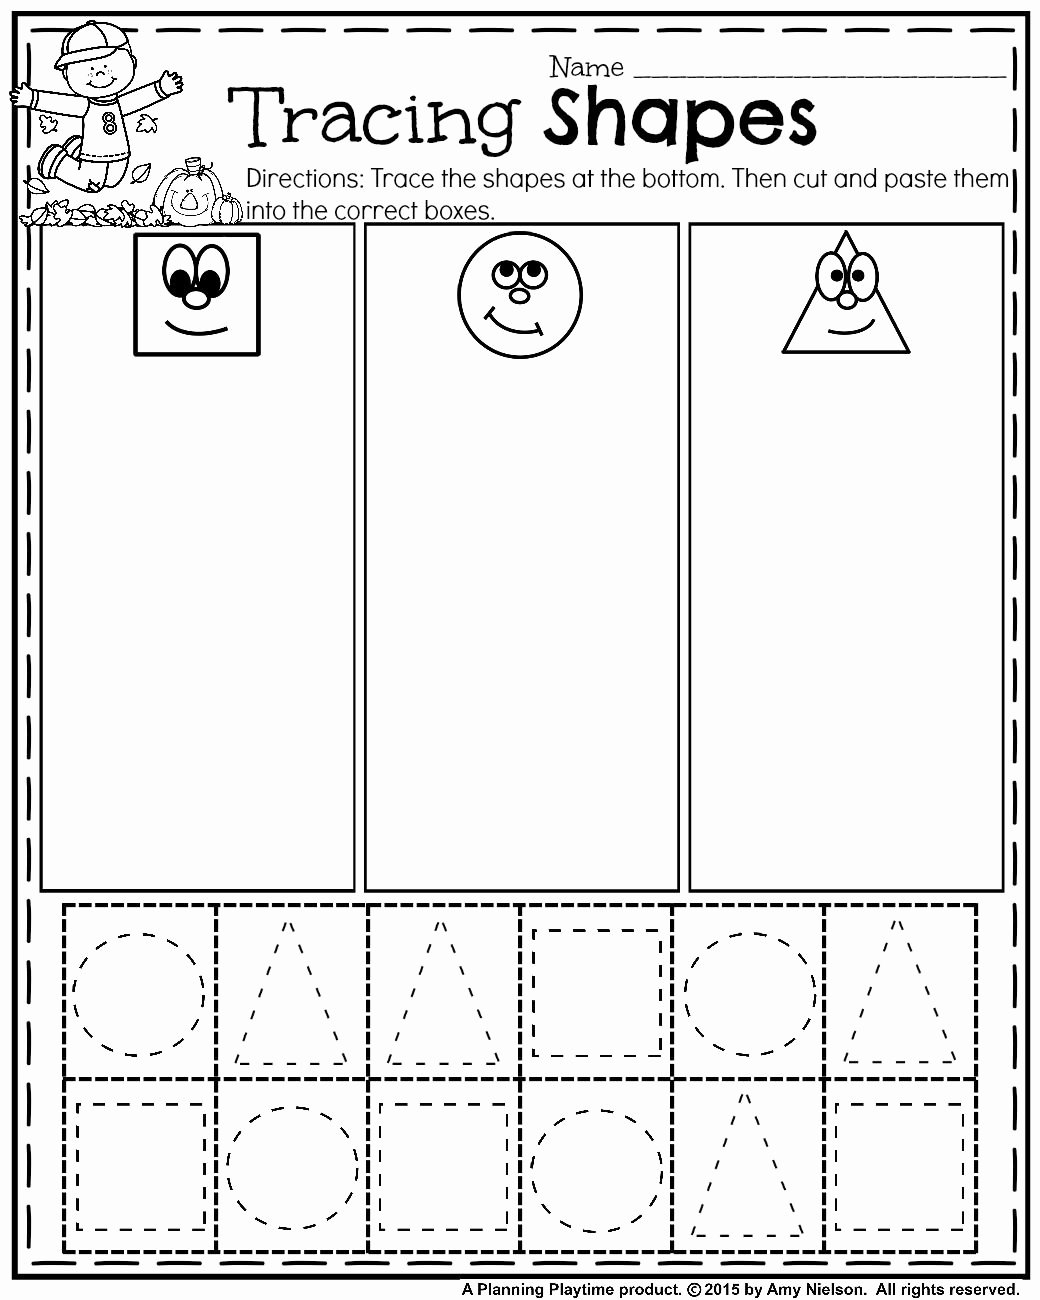 Cutting Shapes Worksheets for Preschoolers top October Preschool Worksheets Planning Playtime